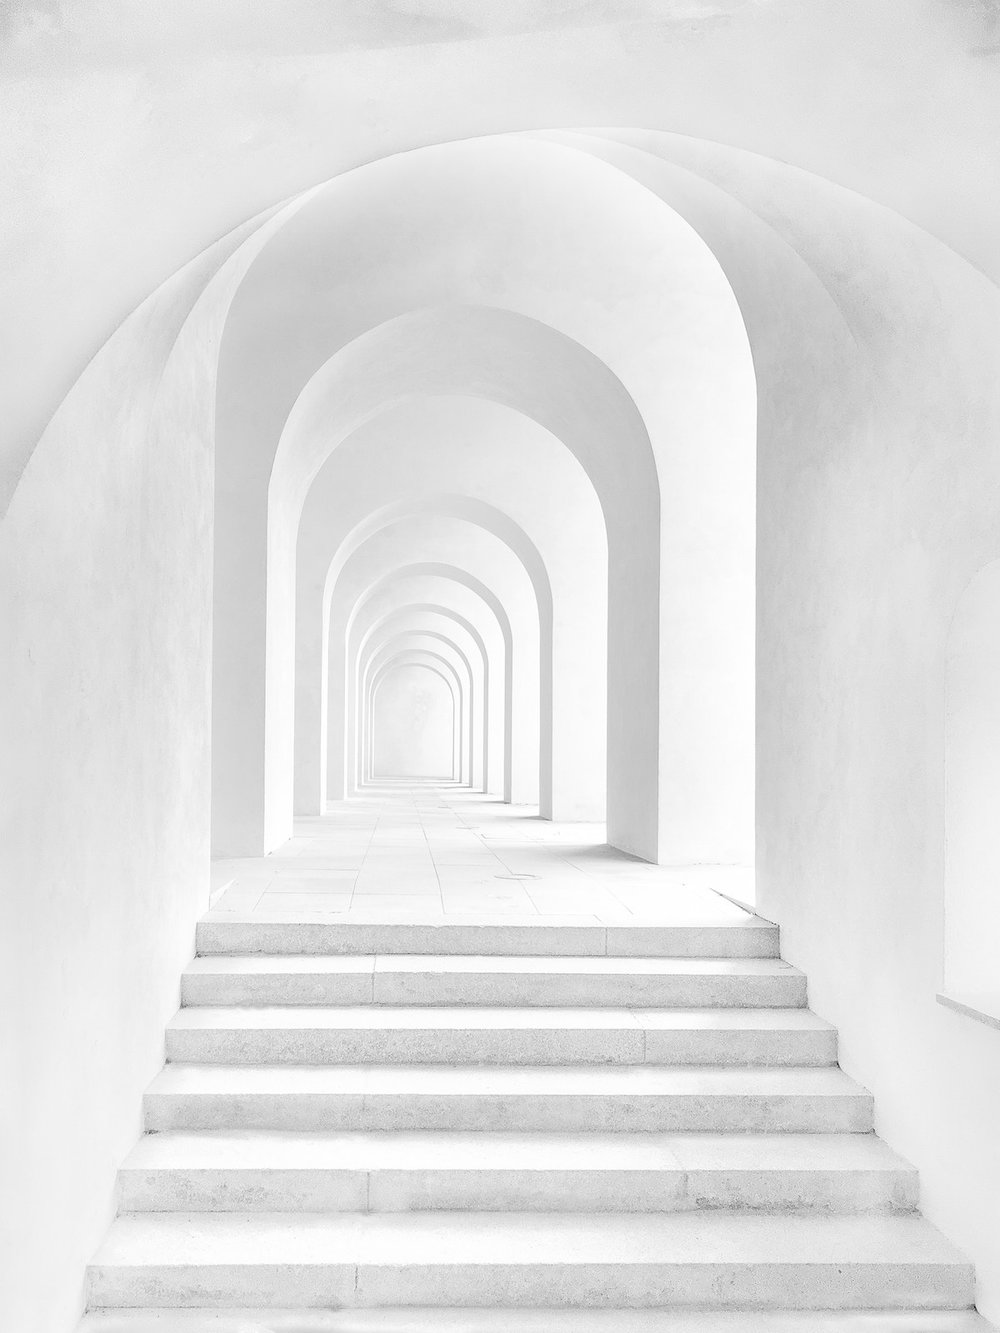 Arched hallway that is bright white, with steps leading up to the first archway